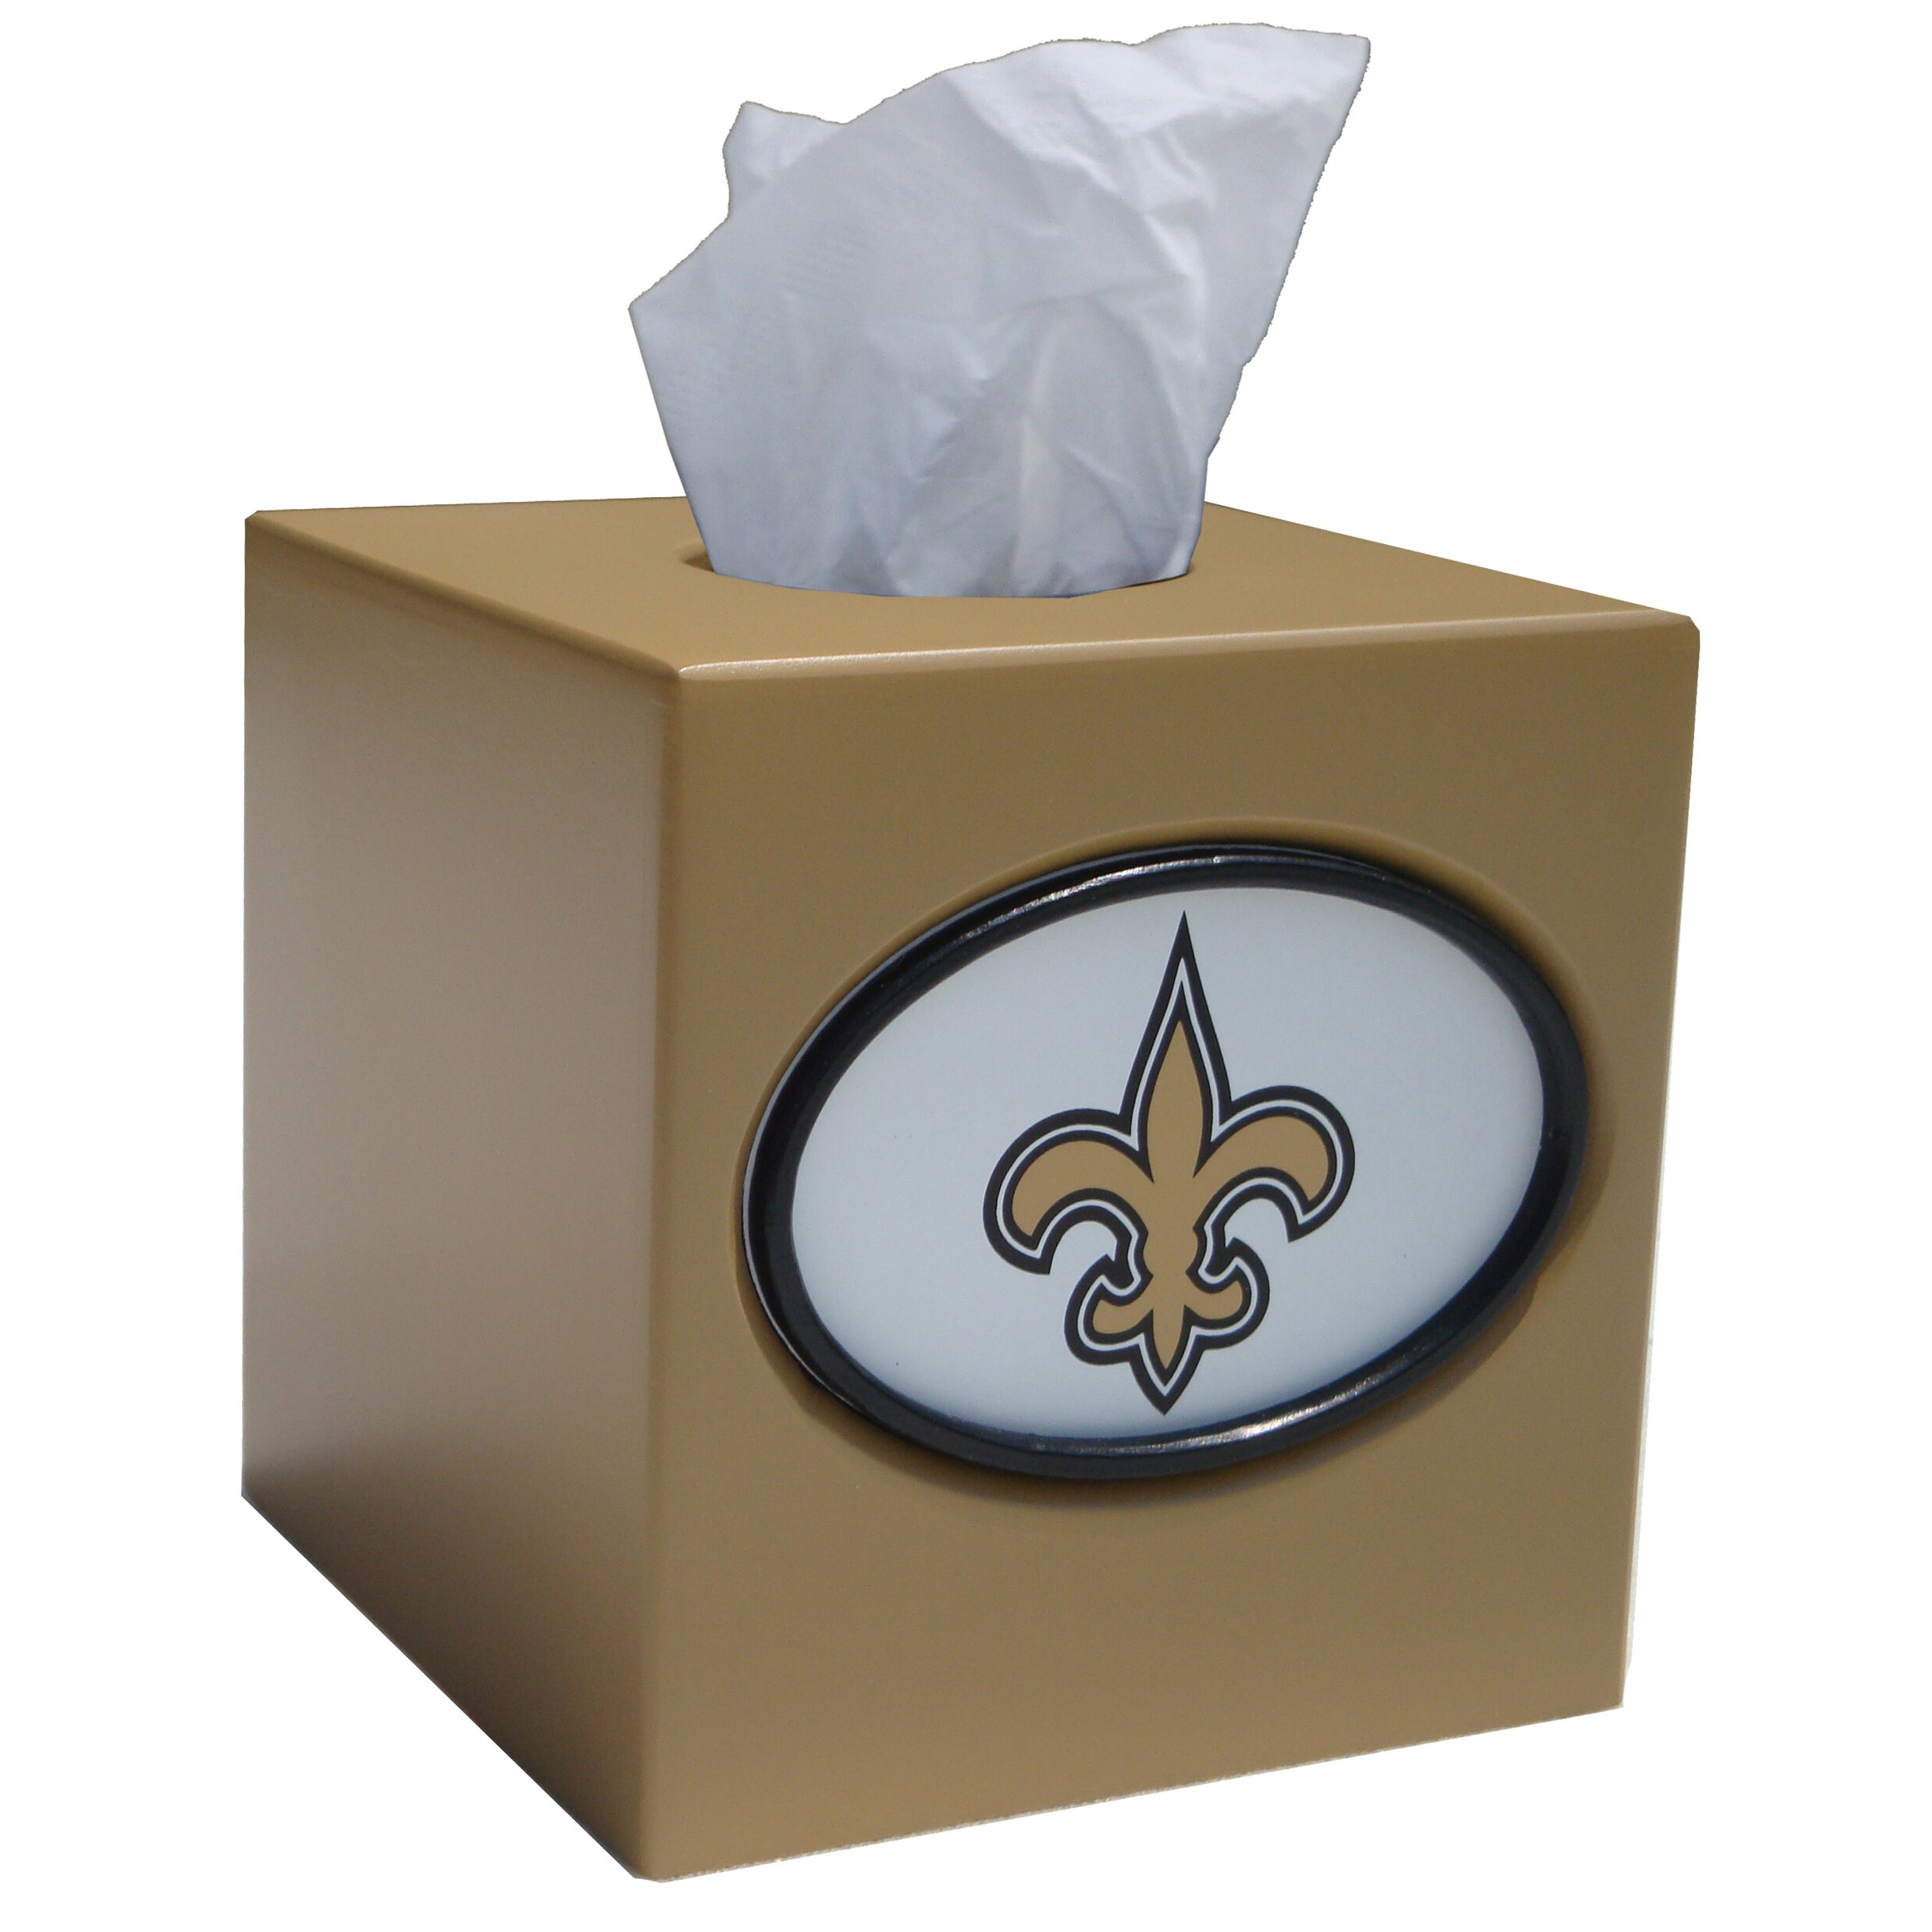 Fan Creations Nfl Tissue Box Cover Amp Reviews Wayfair Supply